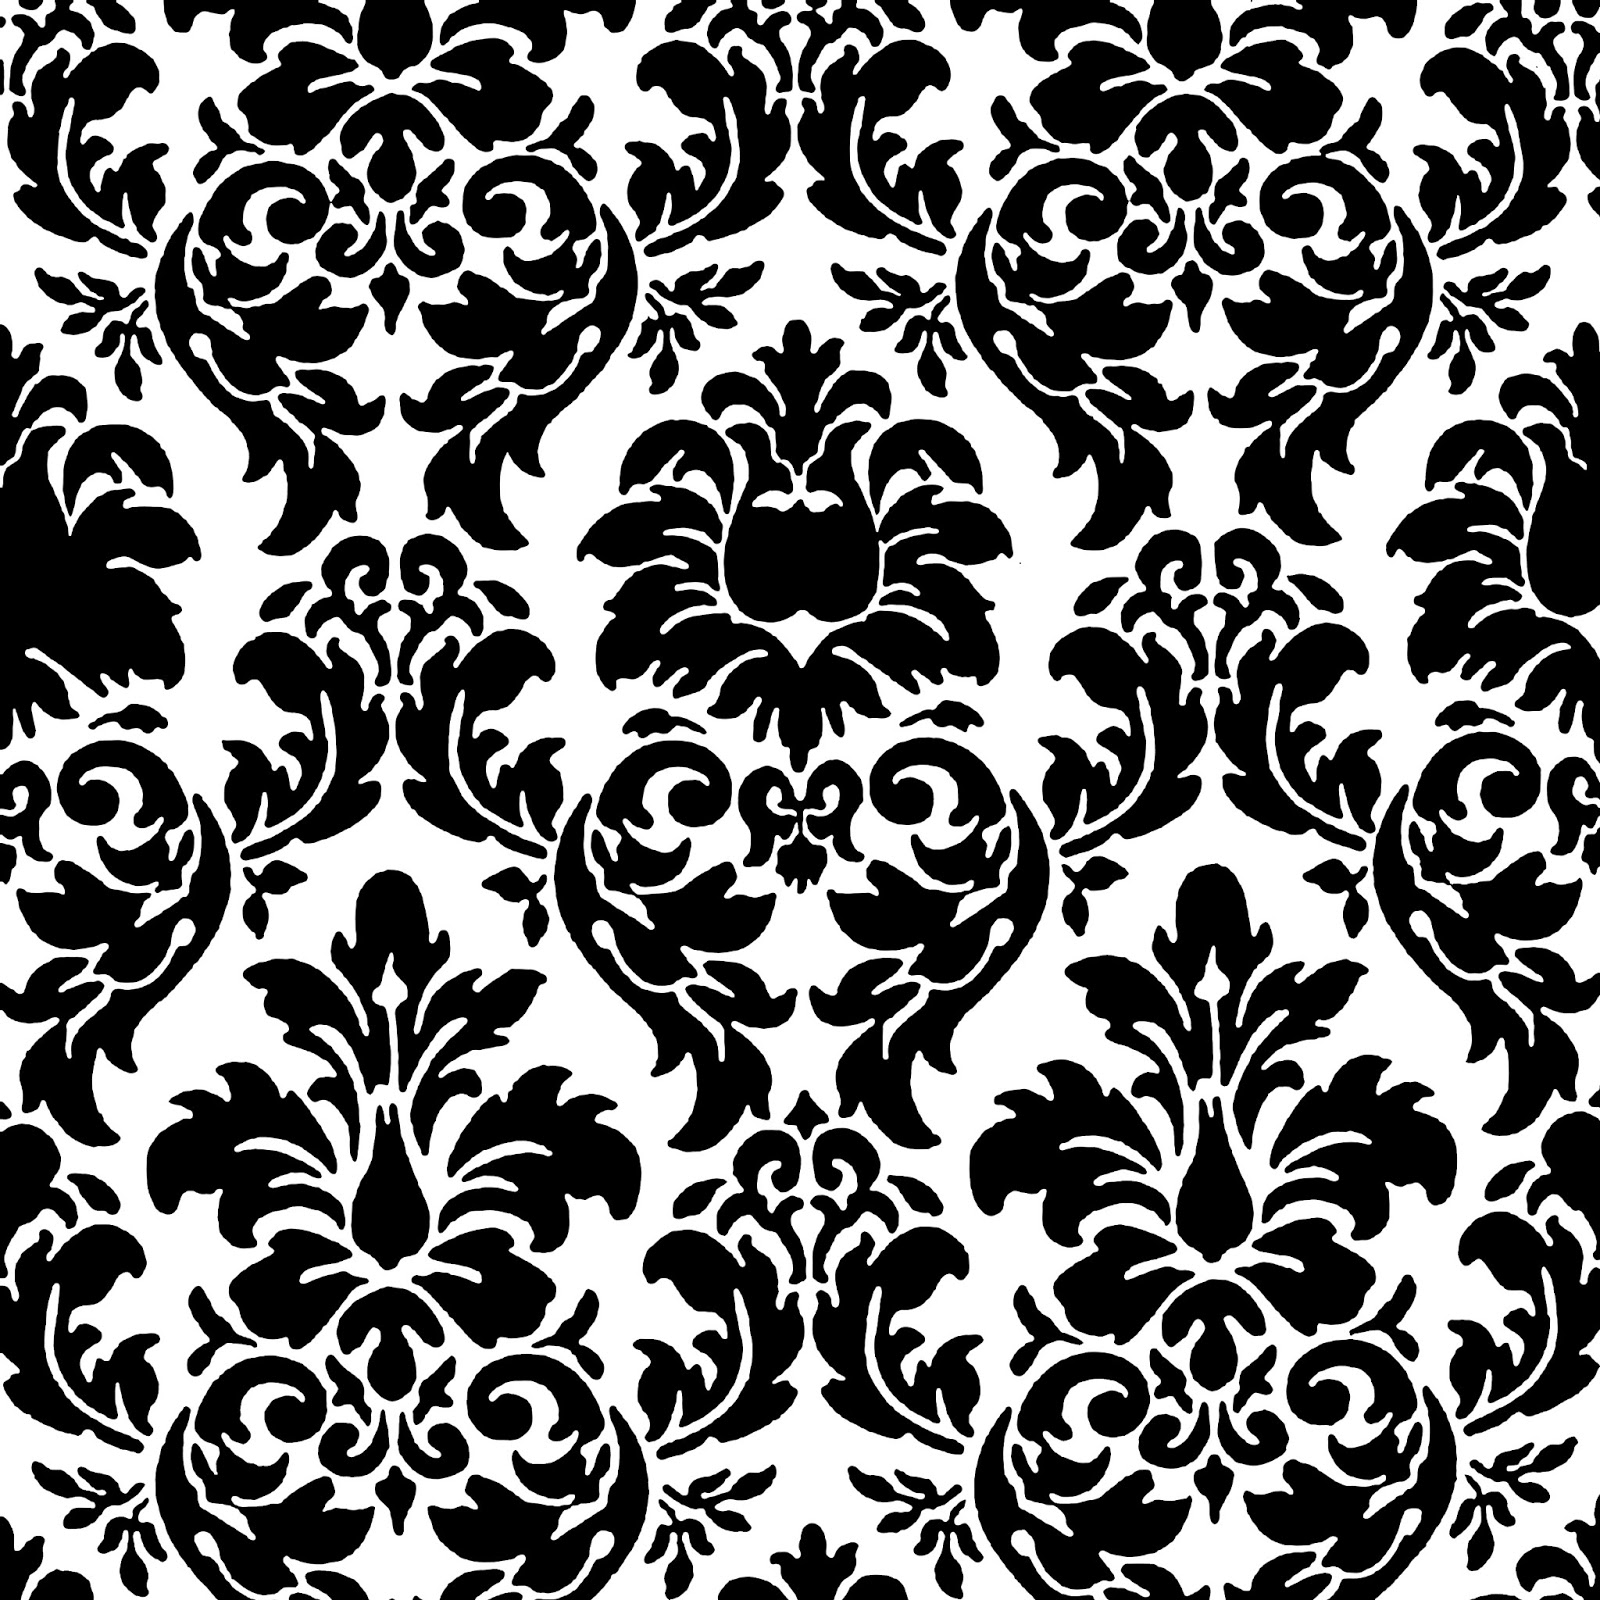 love damask nearly nothing is better than damask freebies 1600x1600